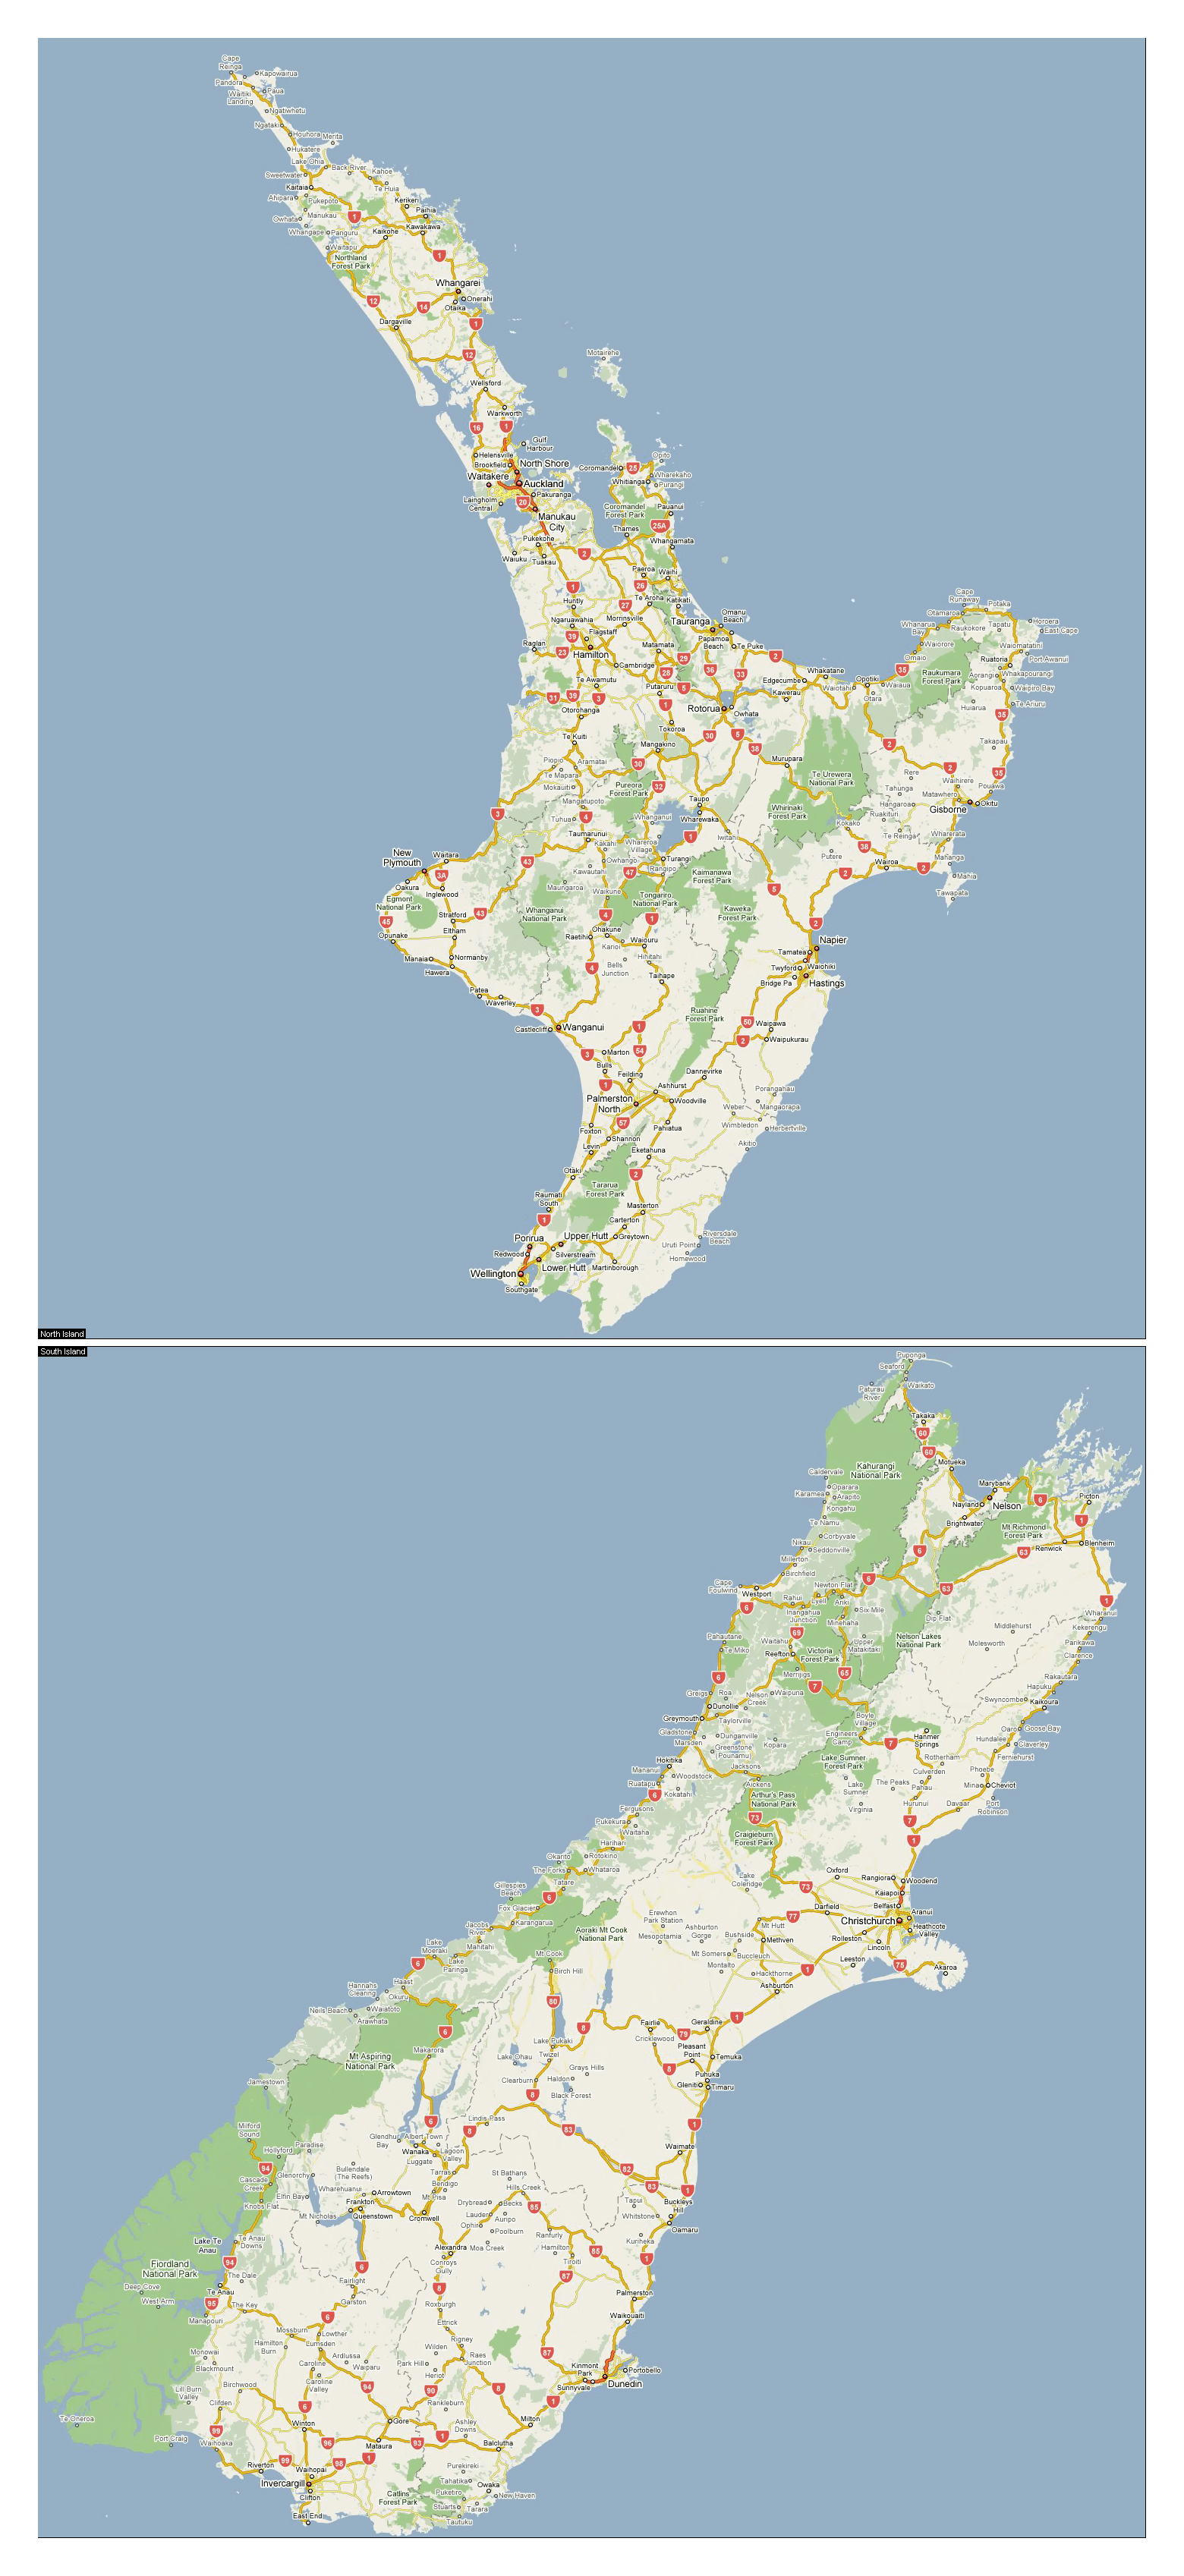 New Zealand Road Map.Large Road Map Of New Zealand With National Parks And Cities New